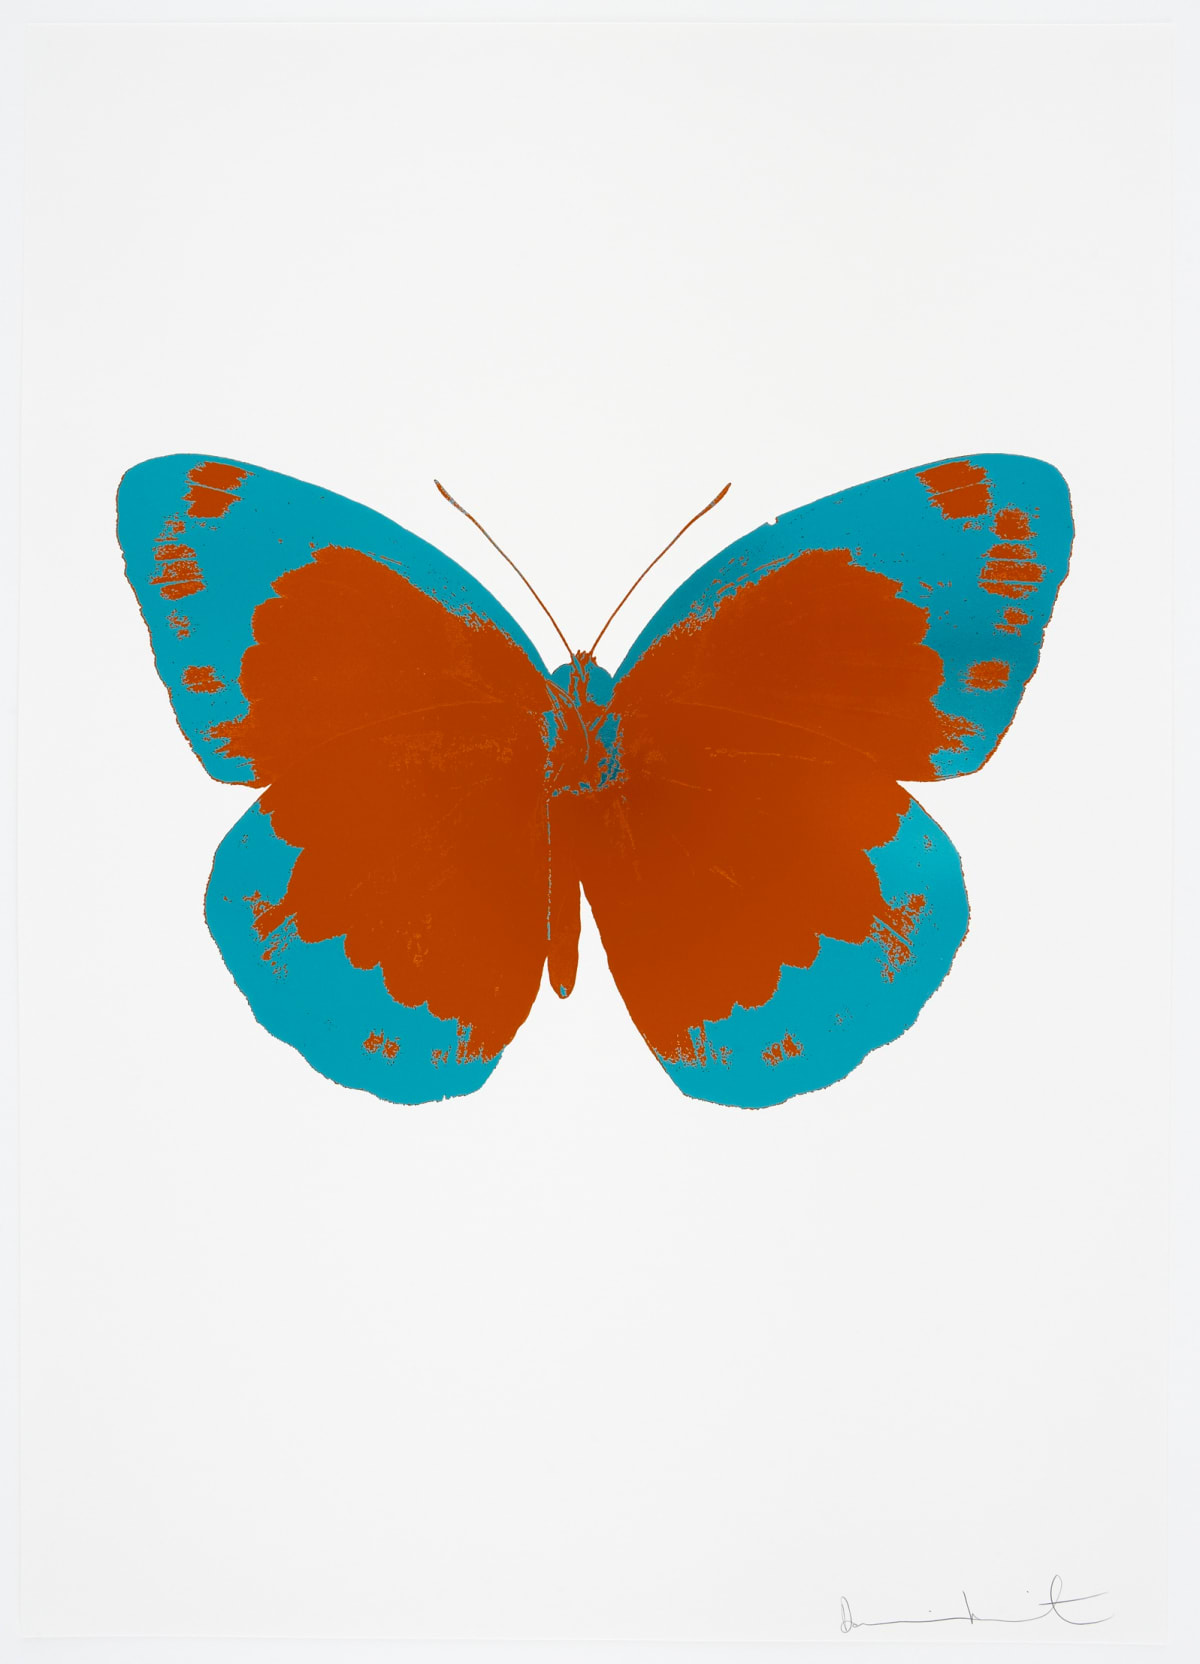 Damien Hirst The Souls II - Prairie Copper/Topaz/Blind Impression, 2010 2 colour foil block on 300gsm Arches 88 archival paper. Signed and numbered. Published by Paul Stolper and Other Criteria. OC7848 72 x 51cm Edition of 15